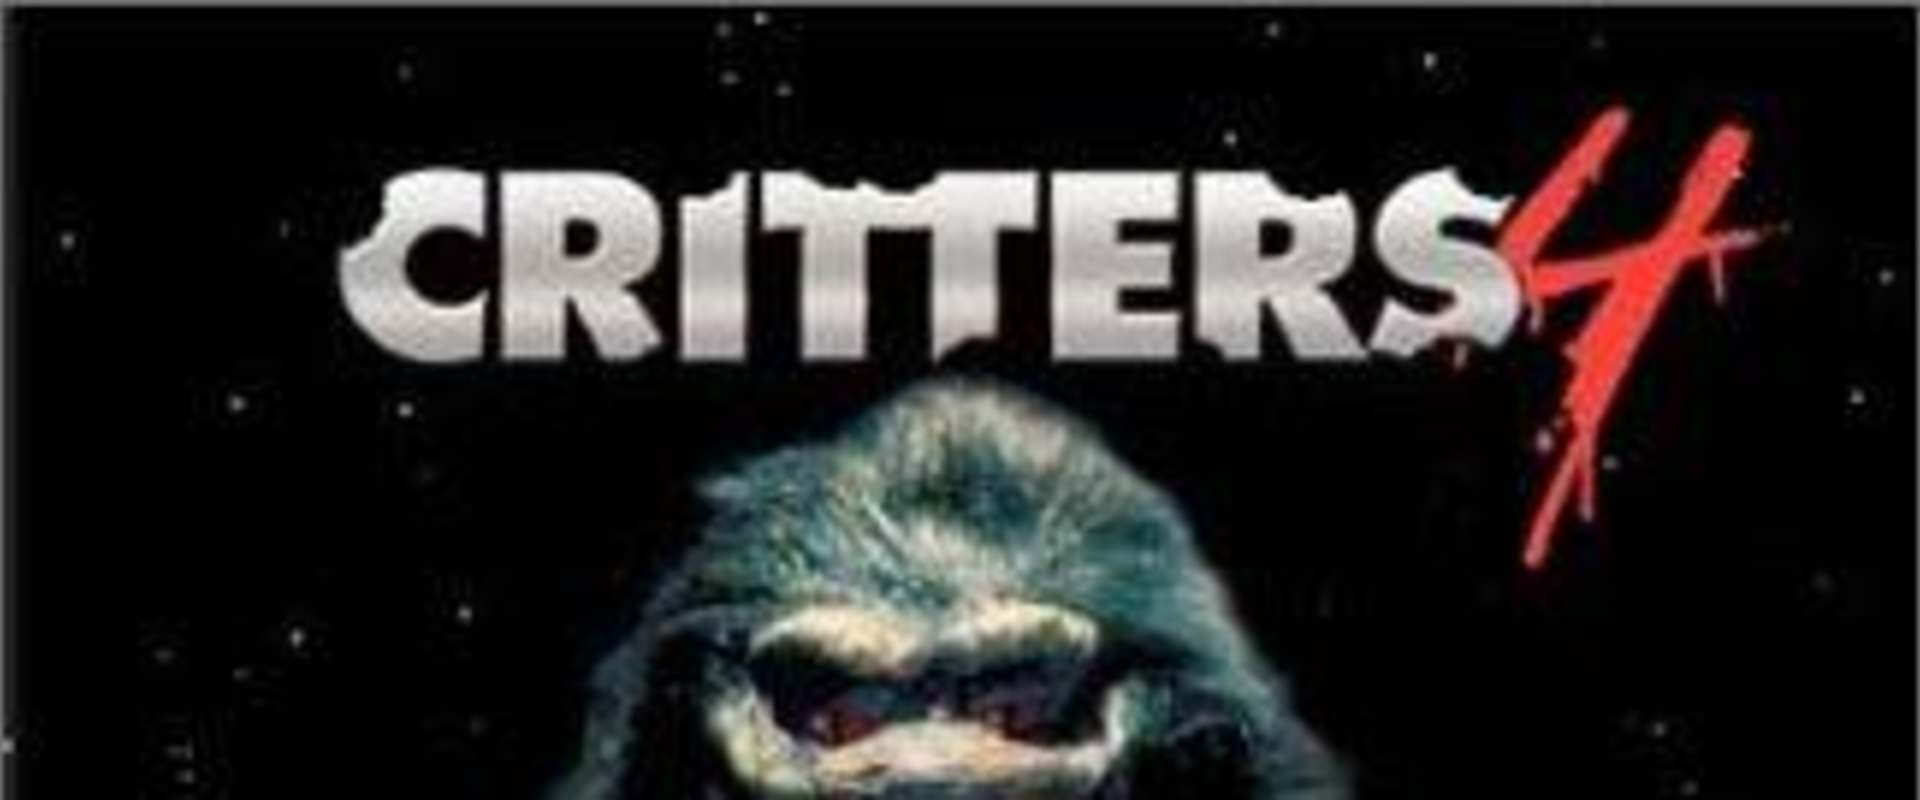 Critters 4 background 2